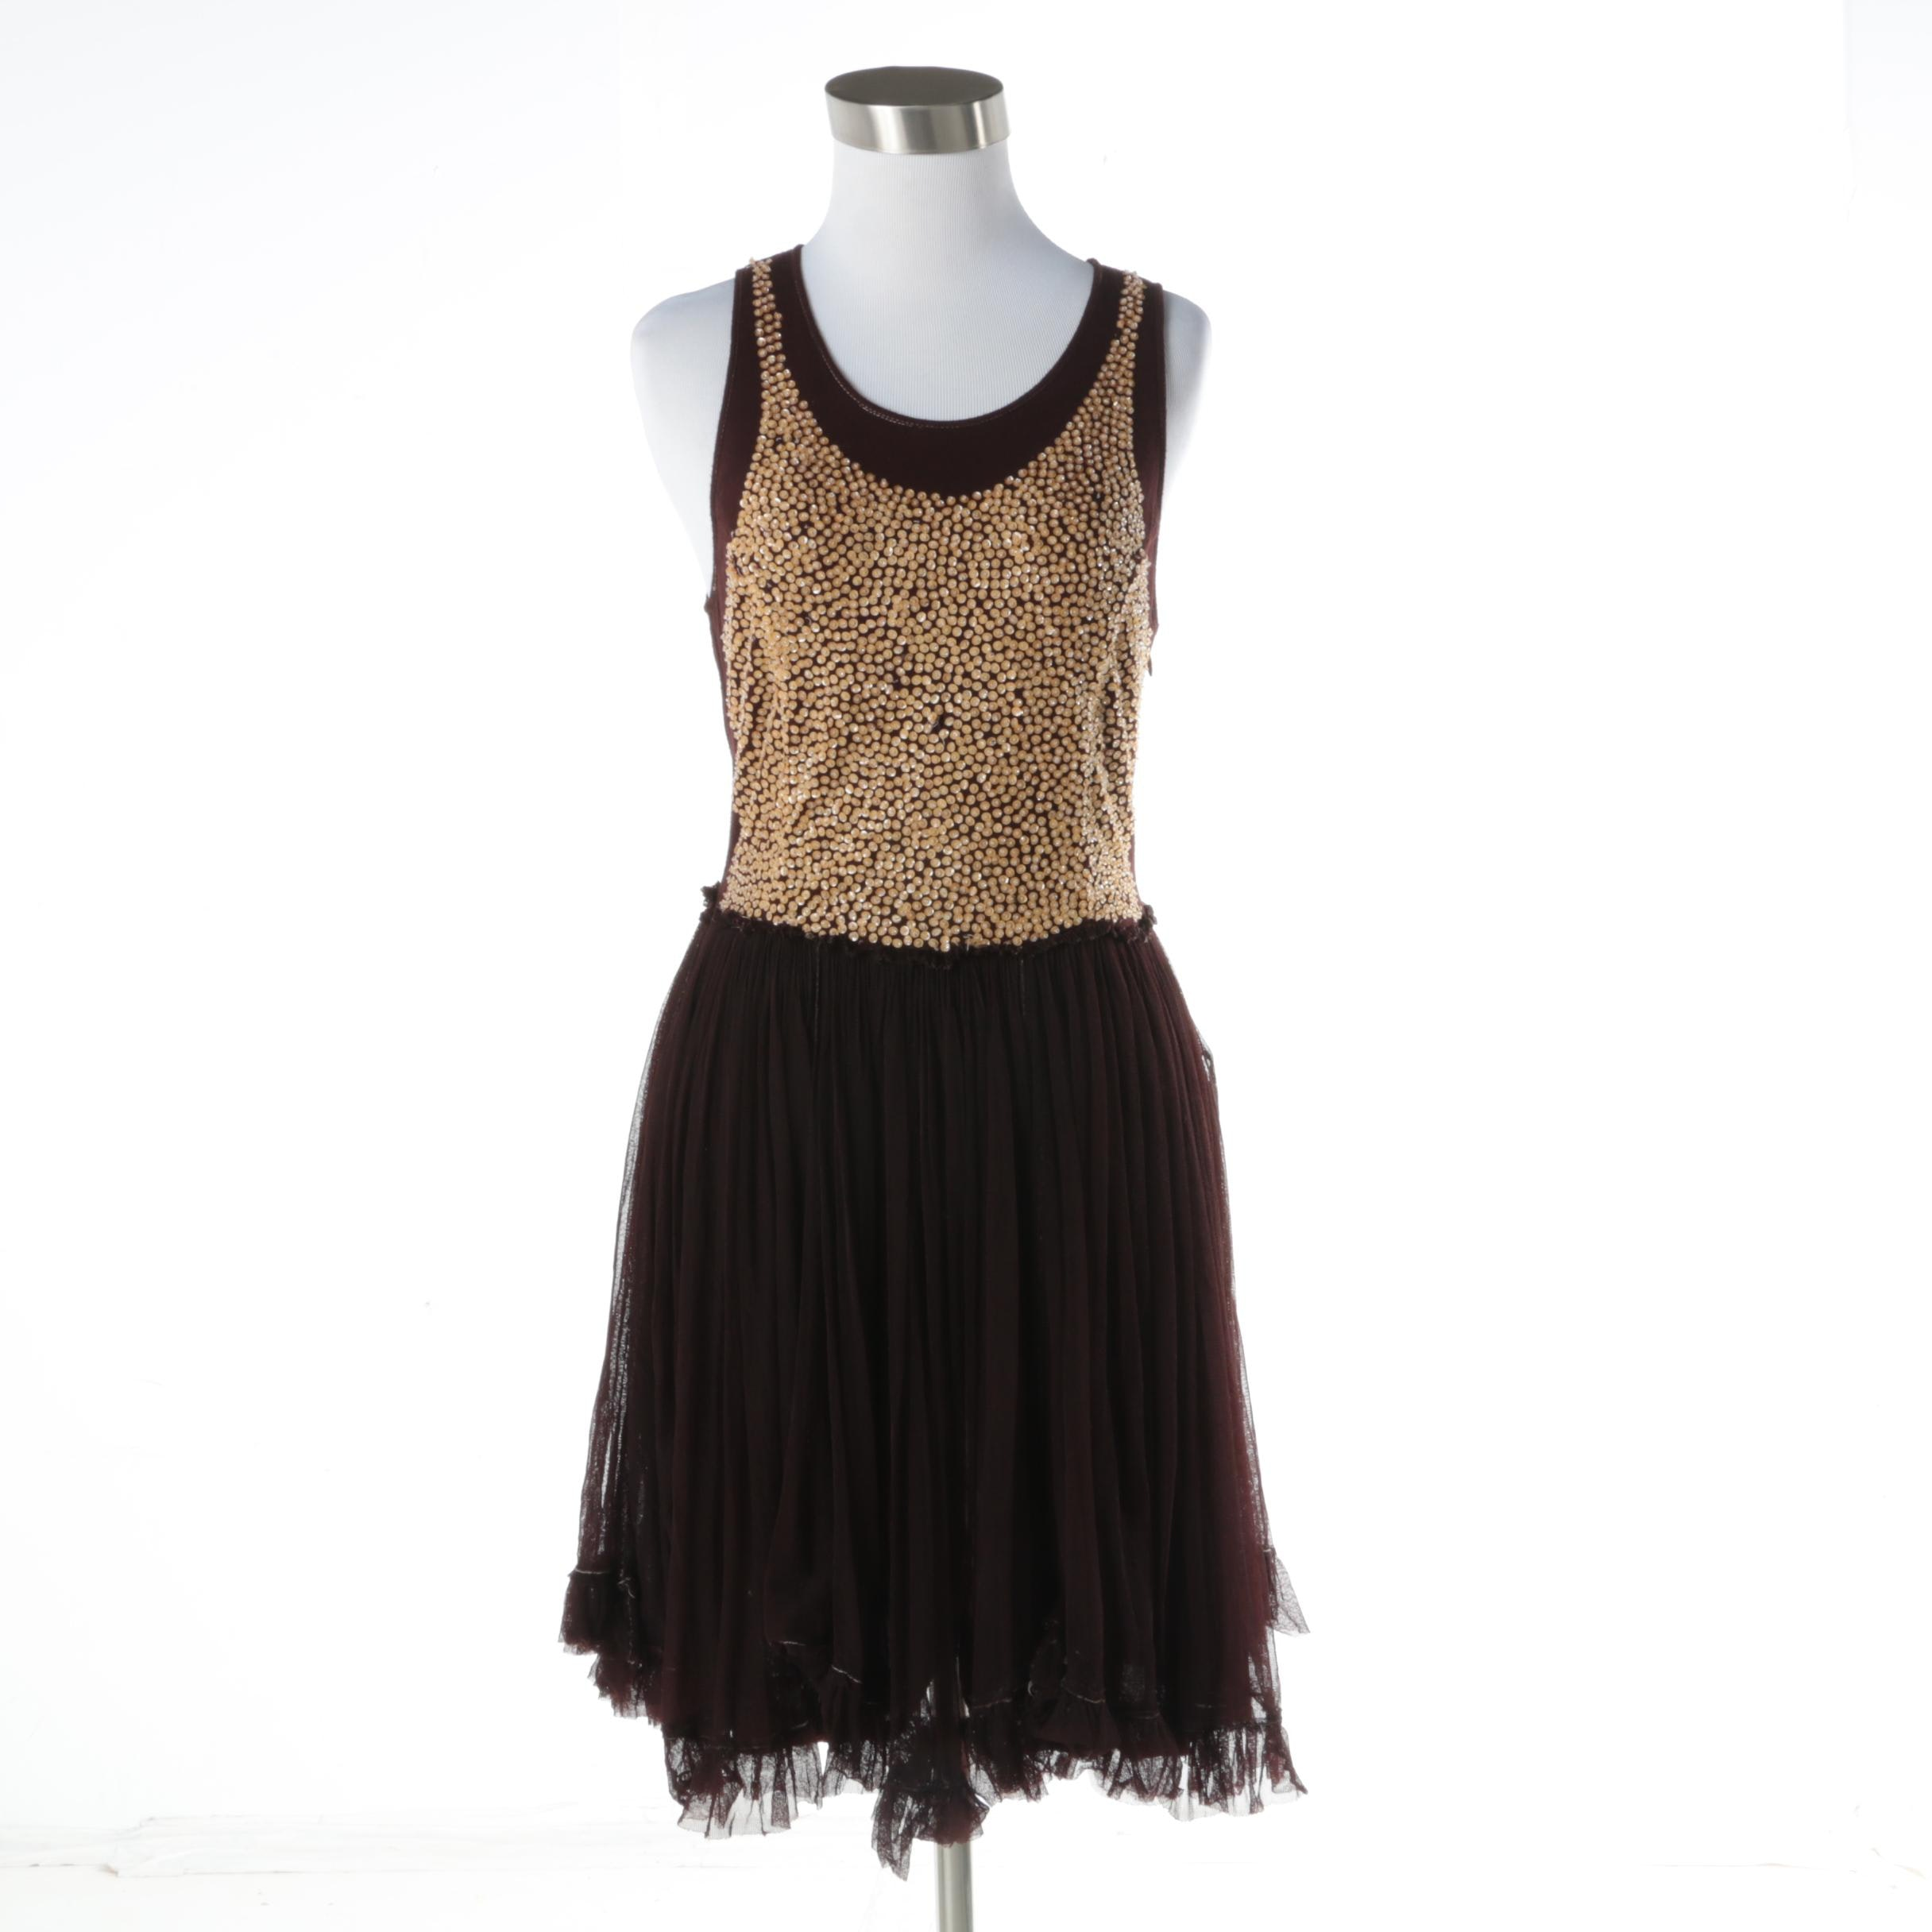 Cooper Tinker Belle Chocolate and Gold Sequin Dress